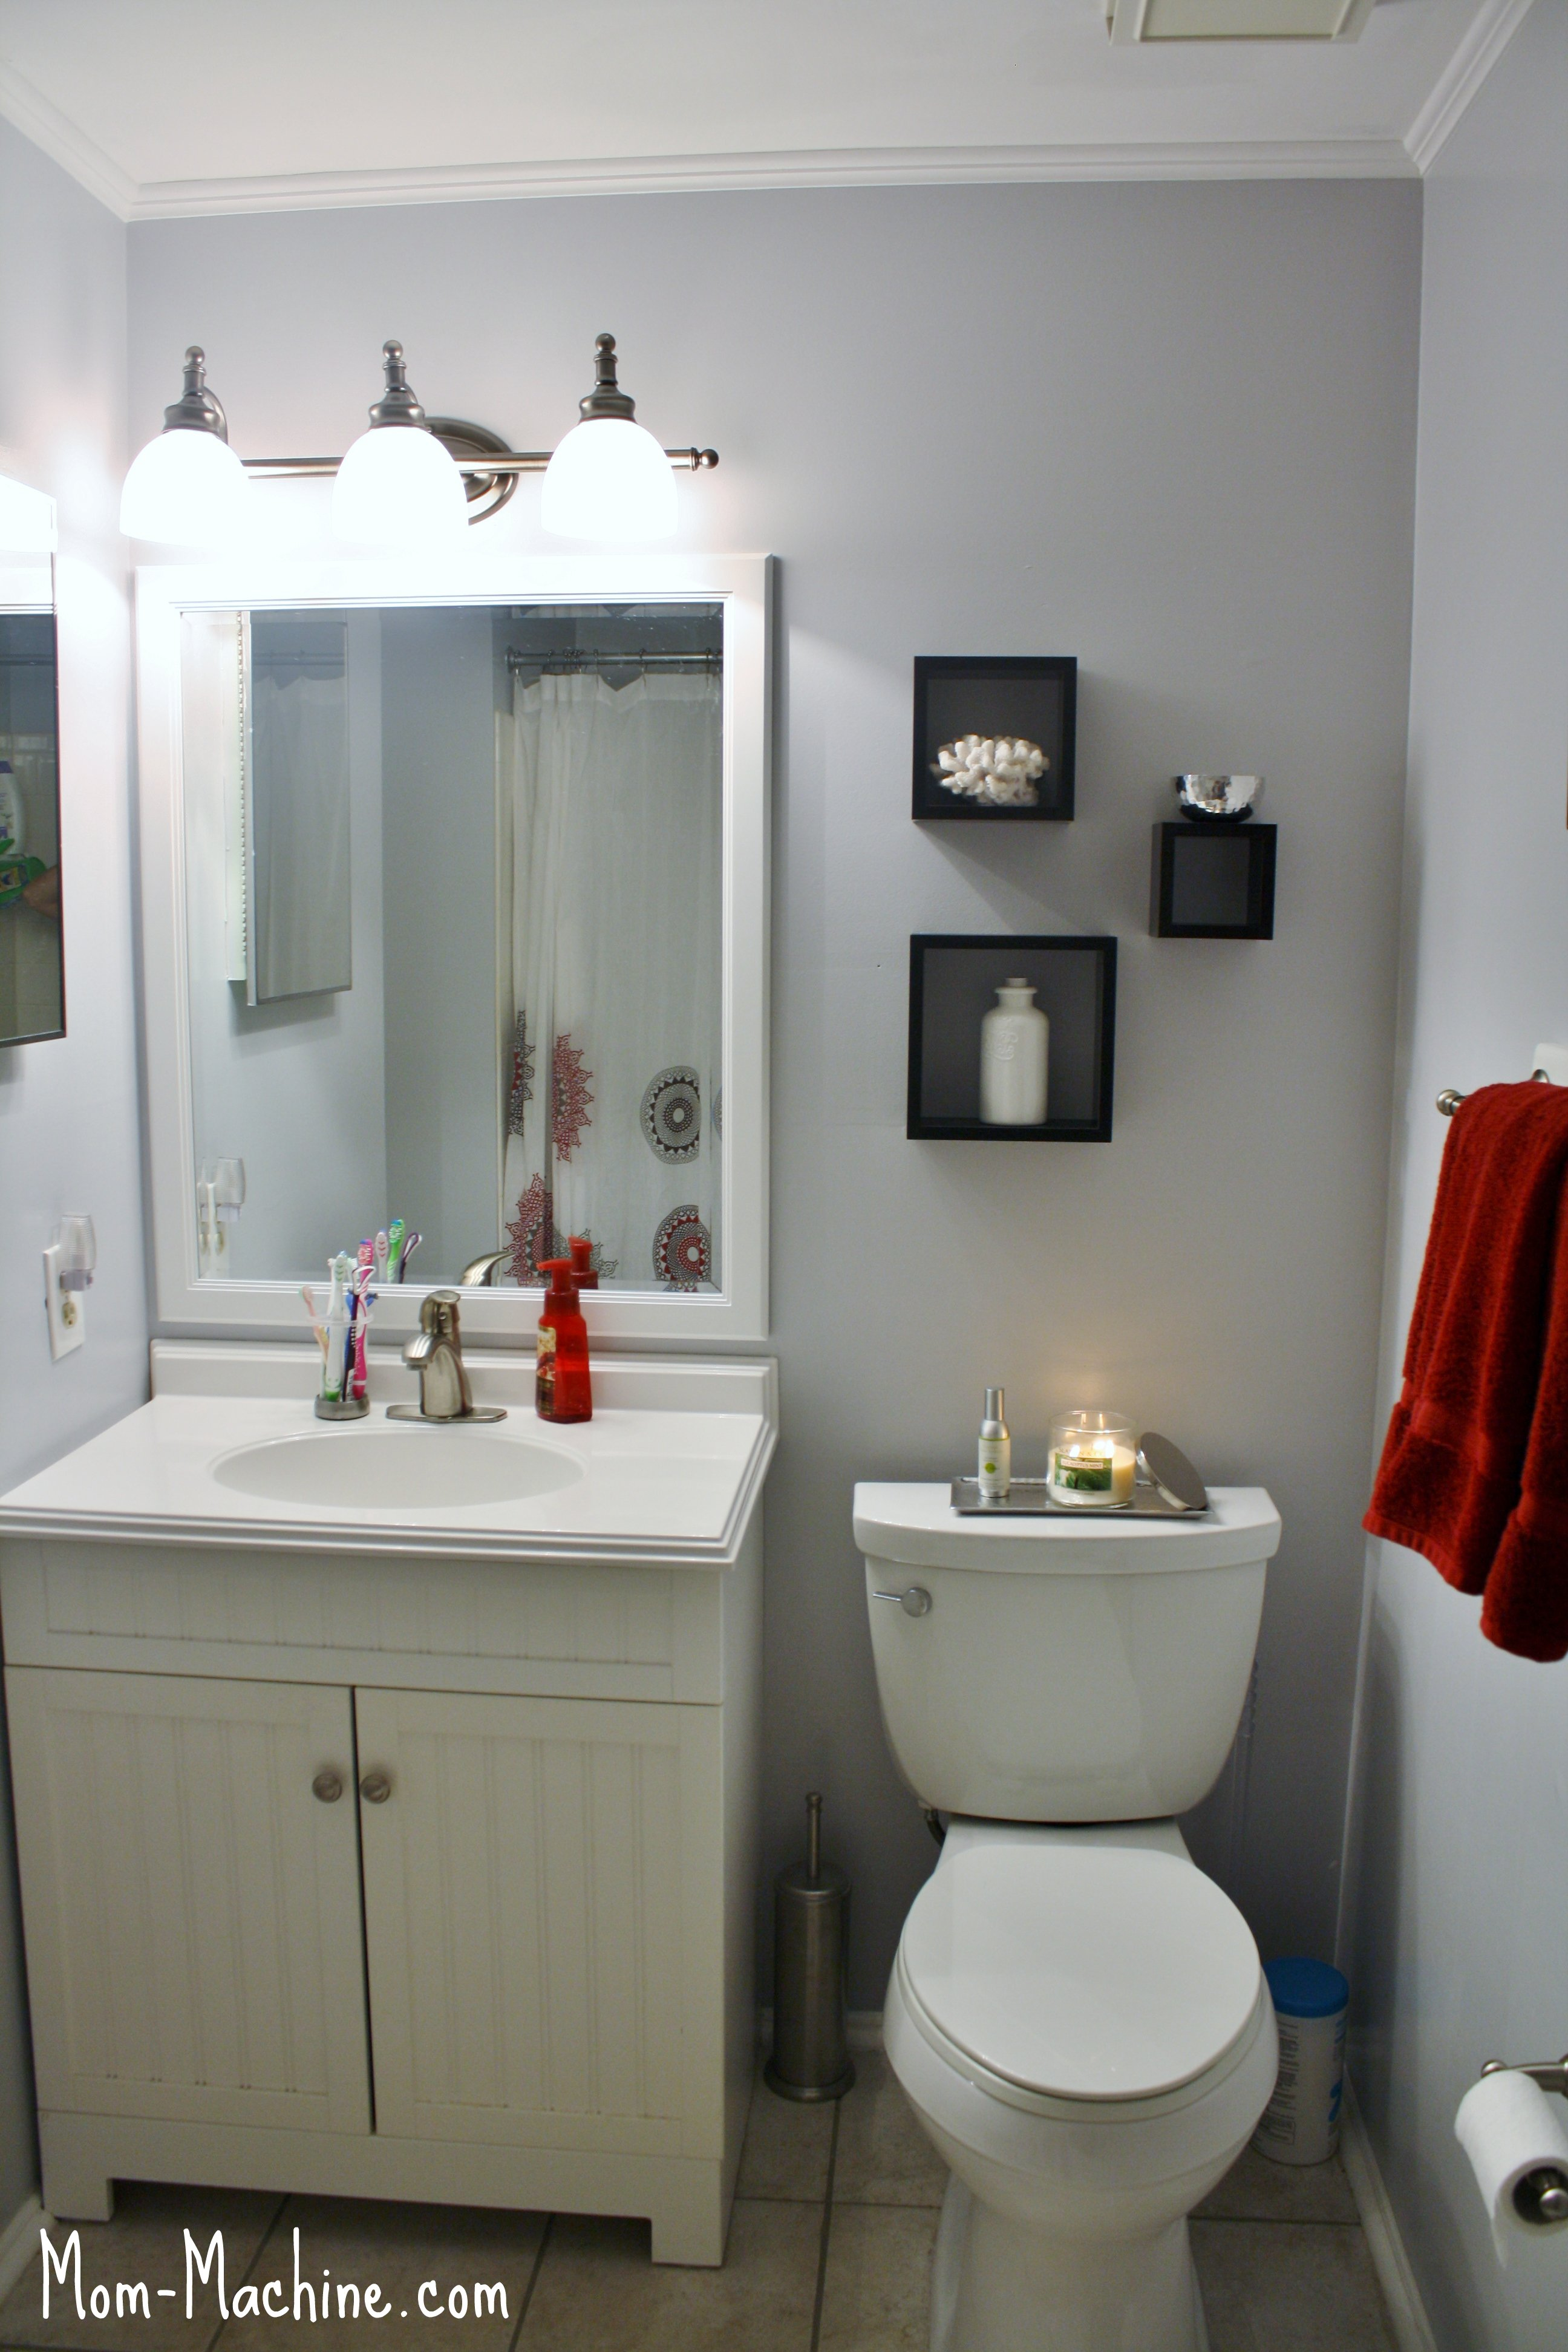 beautiful bathroom with amazing lowes bathroom lighting plus white sink and mirror ideas